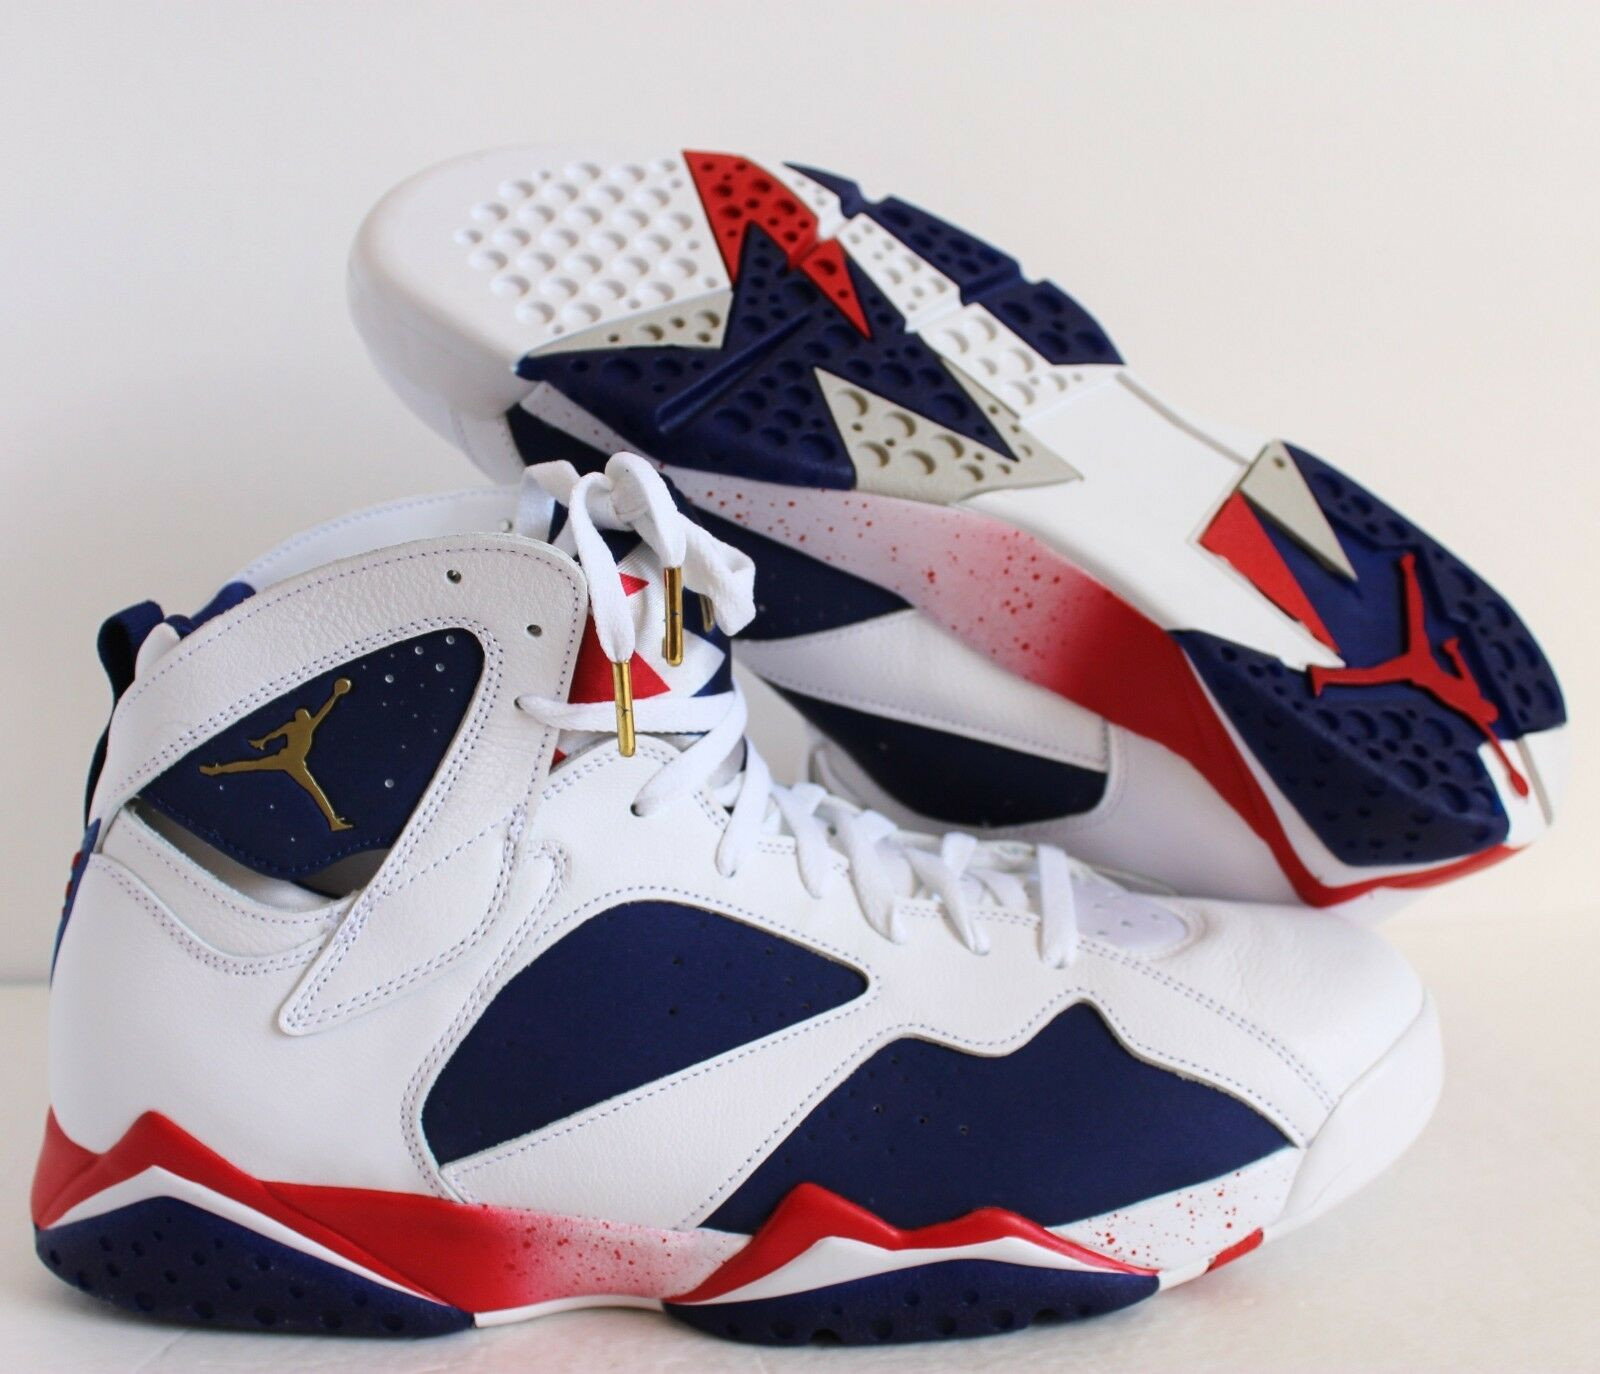 Nike air jordan 7 retro - - retro 2016 olympische alternative basketball sz. 1eb2e7